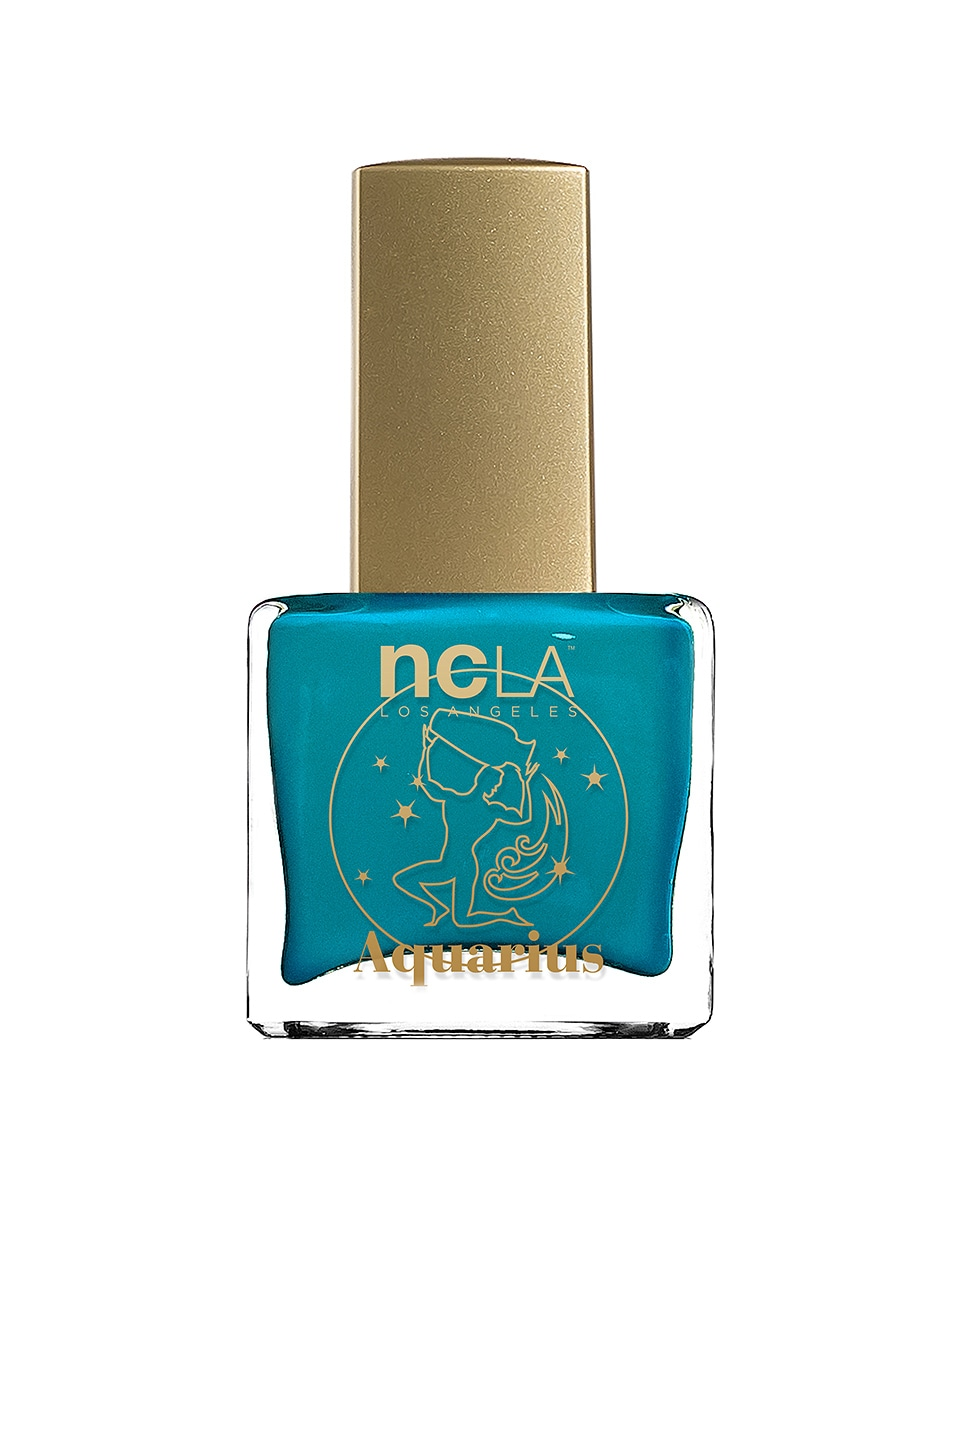 NCLA What's Your Sign? Aquarius Lacquer in Turquoise Cream